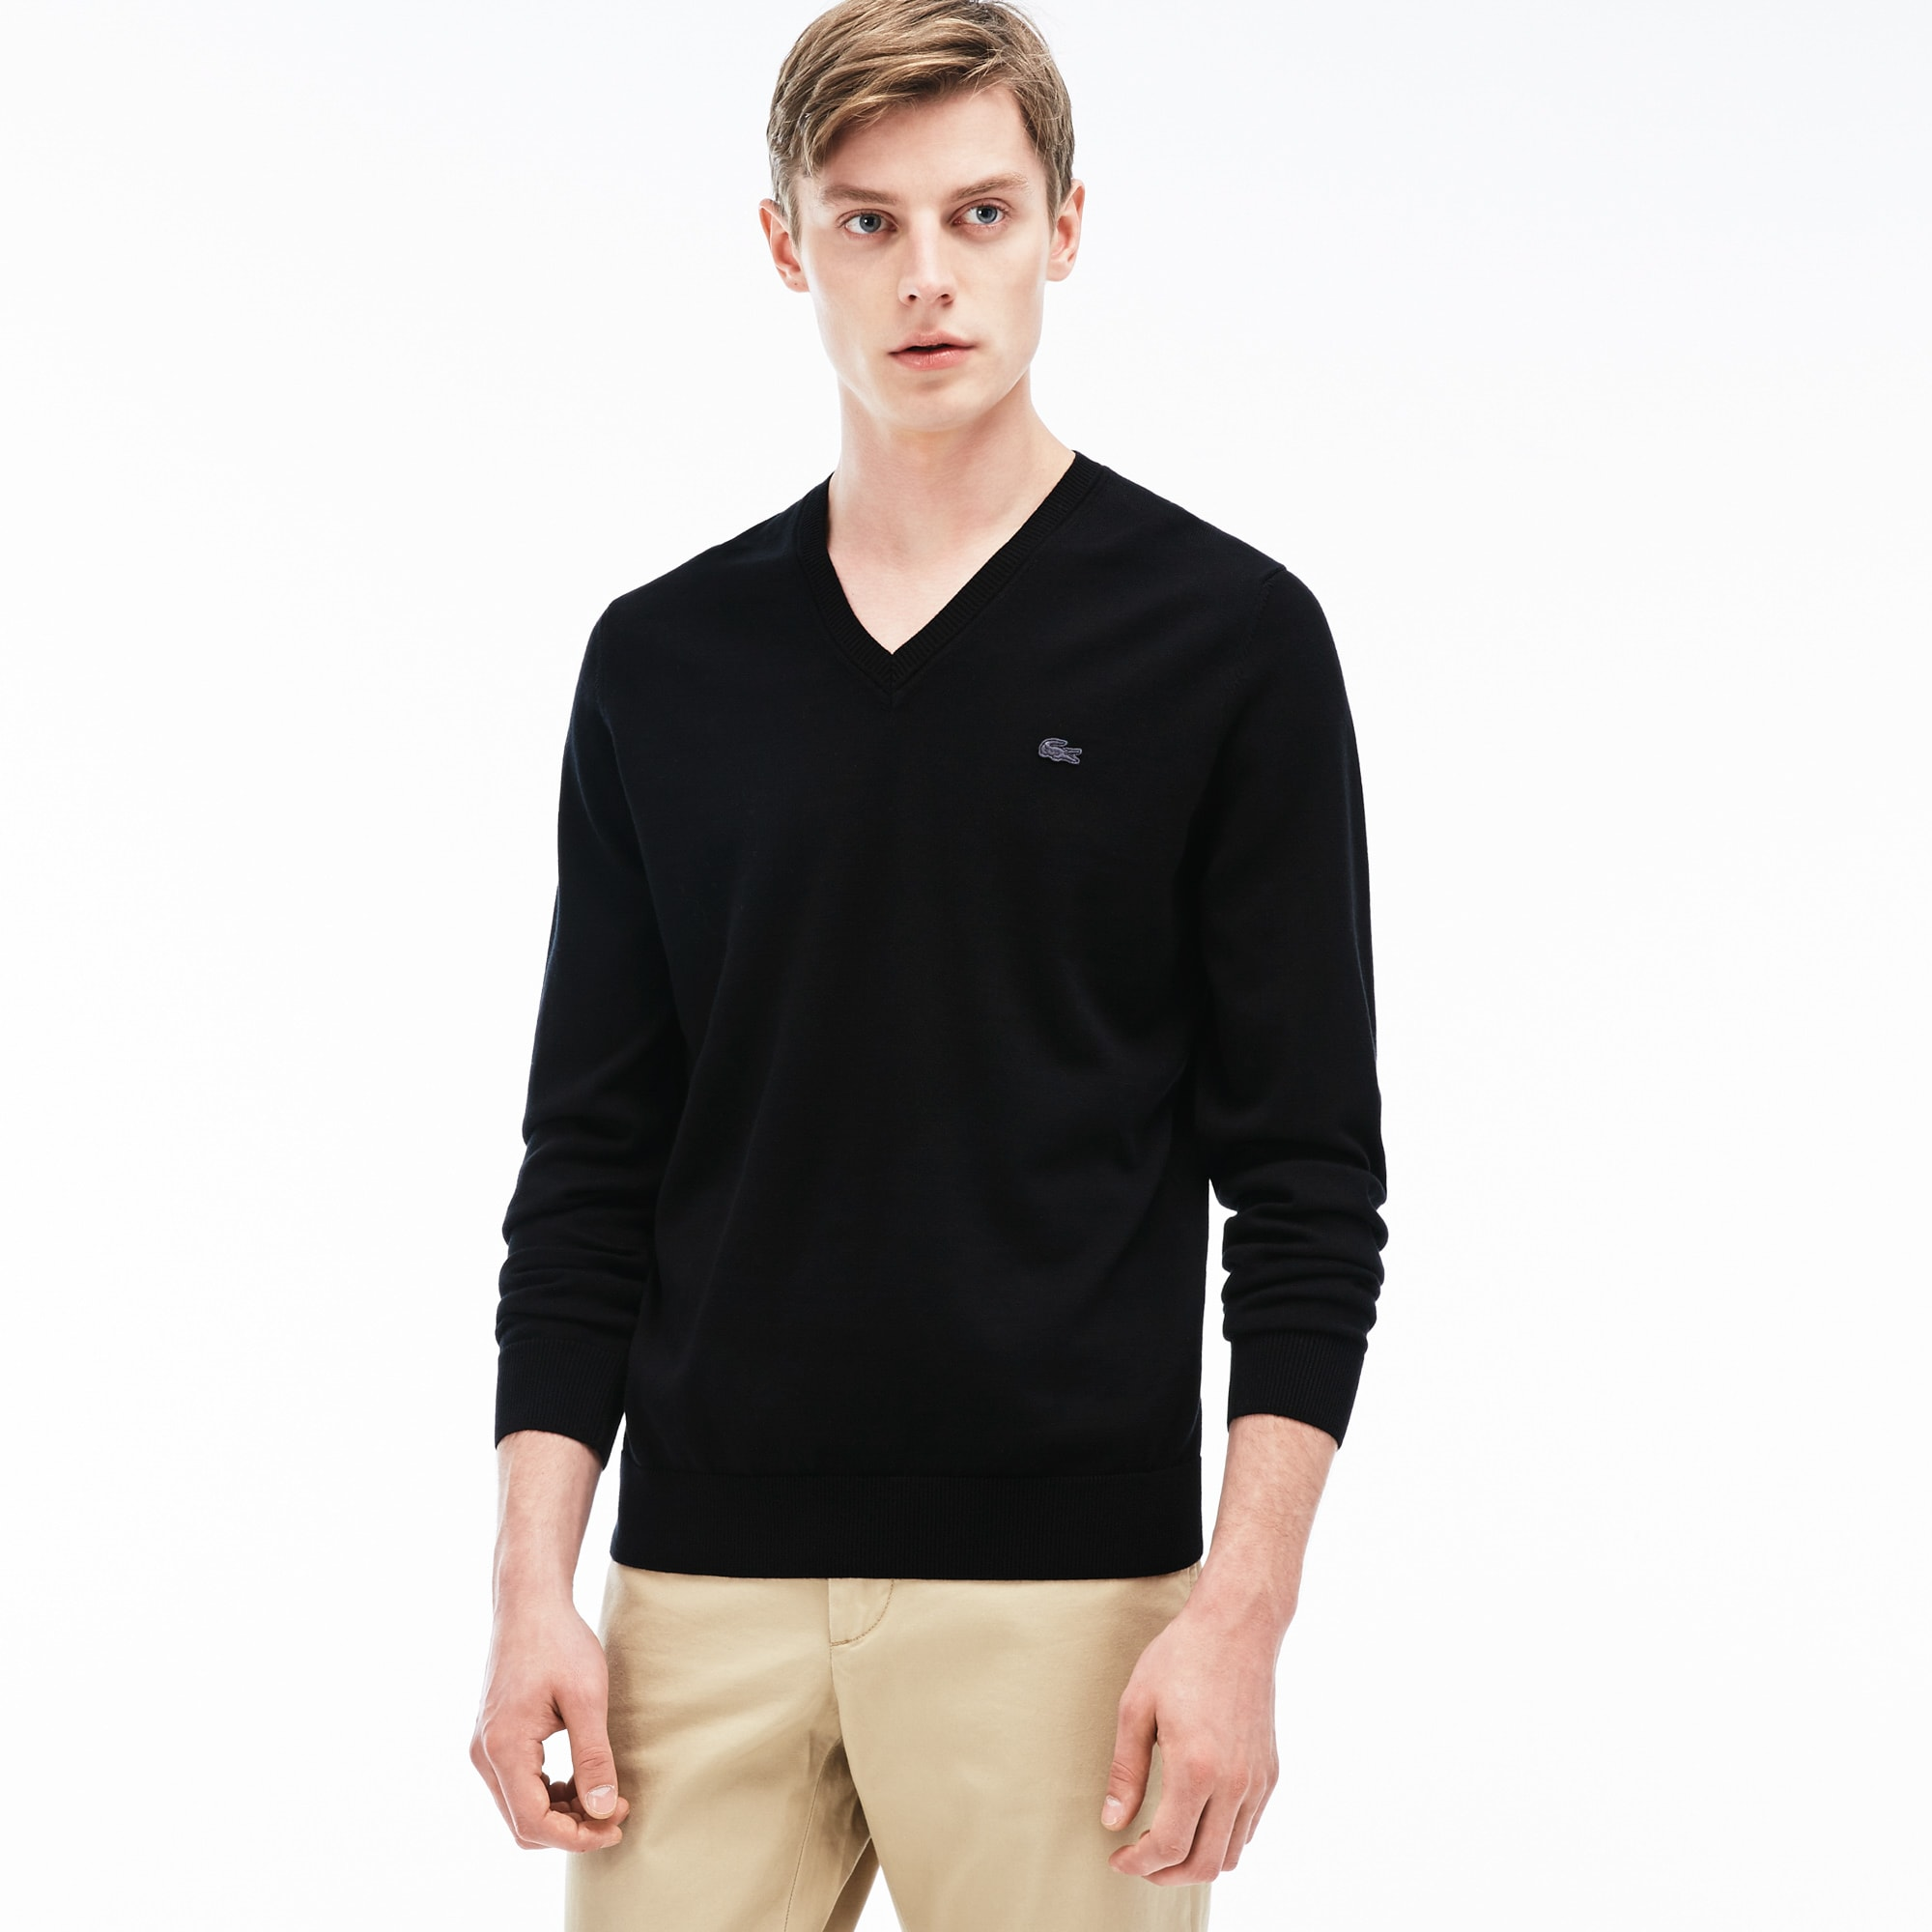 Men's Ribbed V-Neck Sweater | LACOSTE